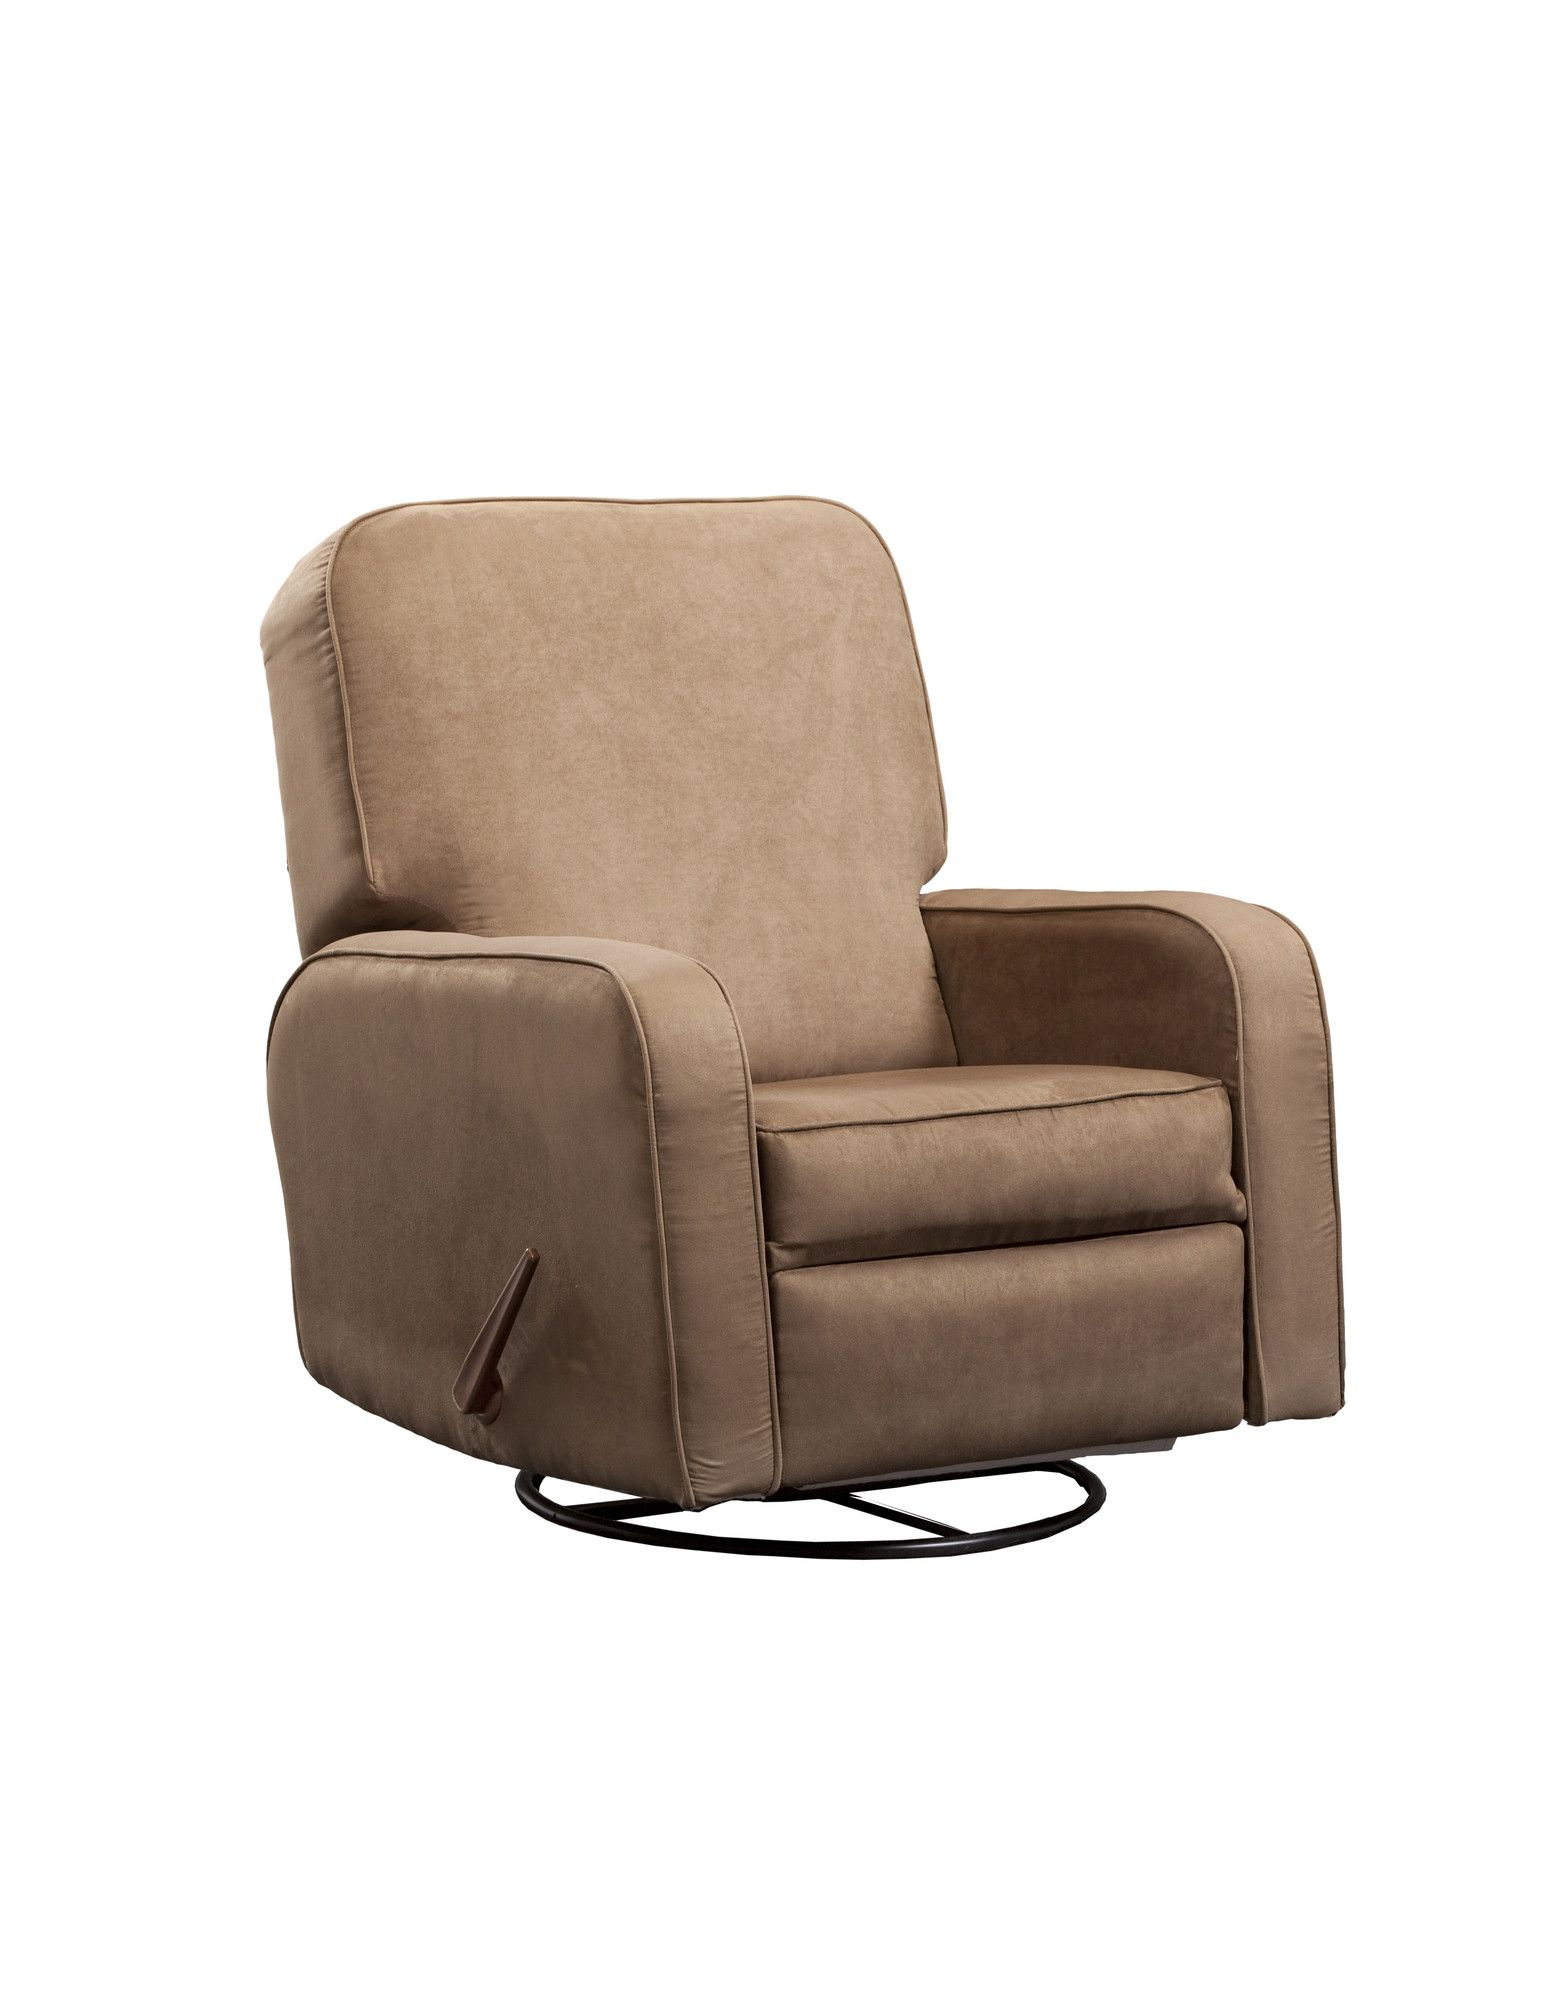 Upholstered Glider Lever Actuated Recliner Products